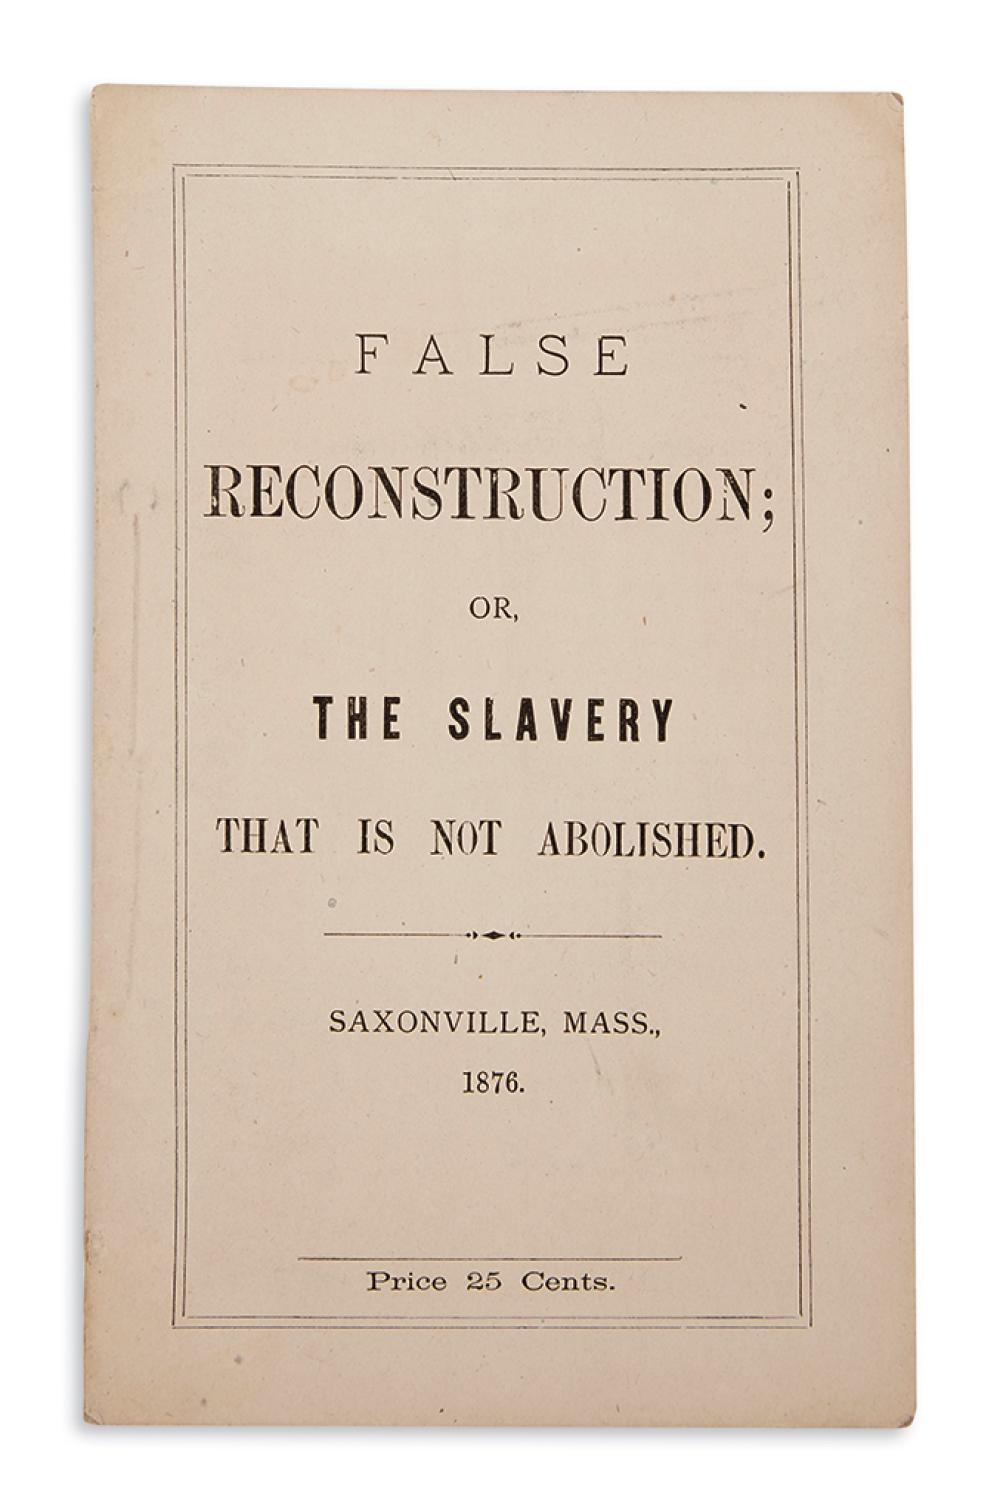 (RECONSTRUCTION.) [Chapman, Thomas]. False Reconstruction; or, The Slavery that is not Abolished.